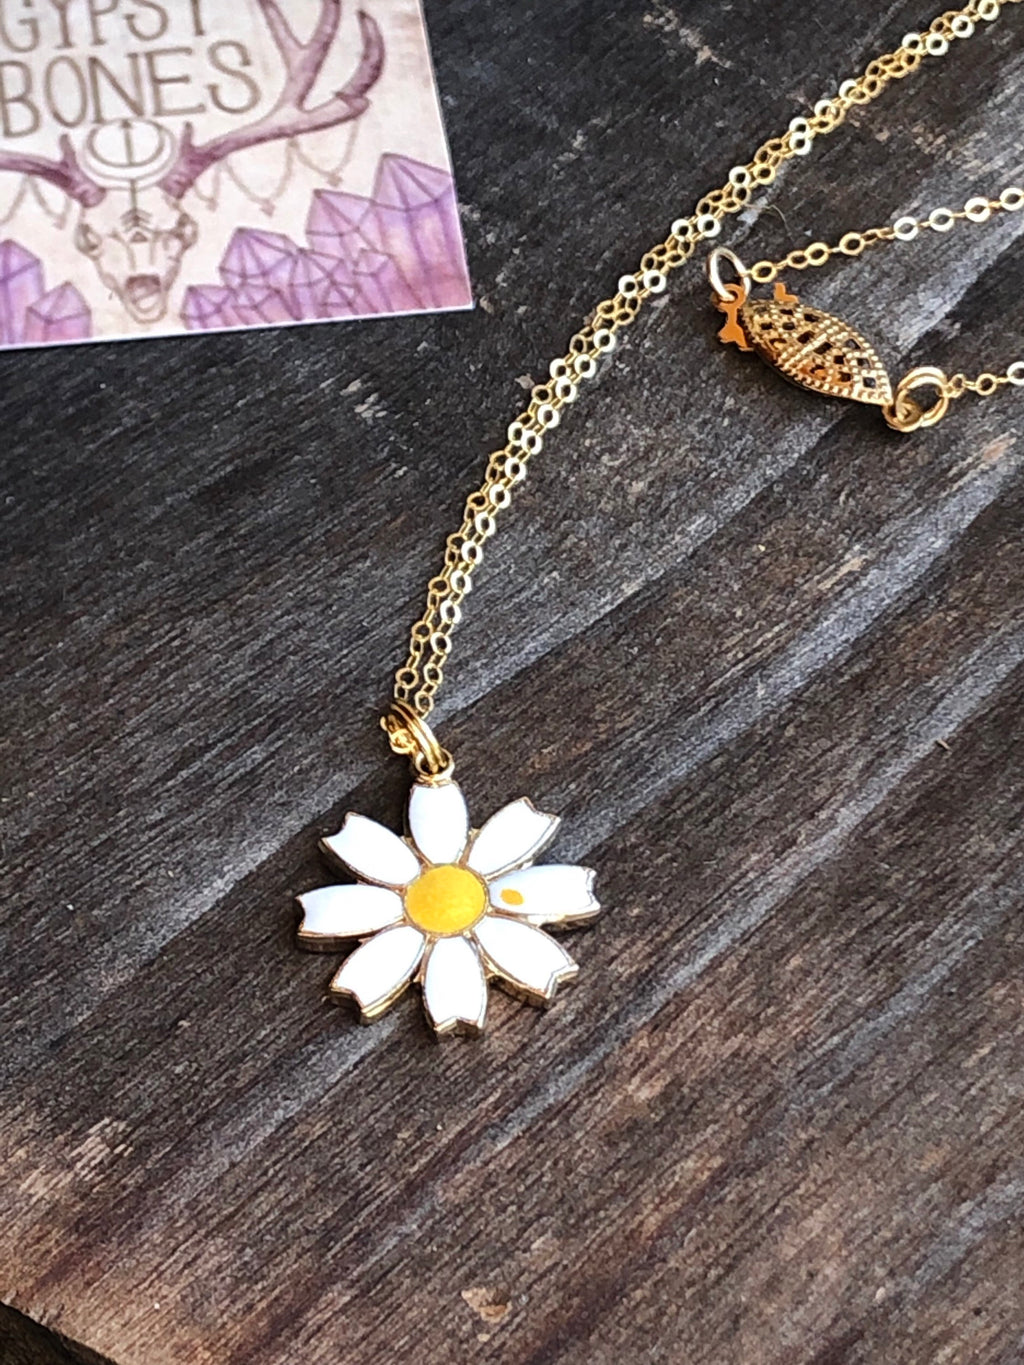 Daisy Necklace / April Birthday Gift April Birth Flower Daisy Necklace / 14k Gold Filled Chain Clasp Vintage Daisy Pendant Enameled Brass